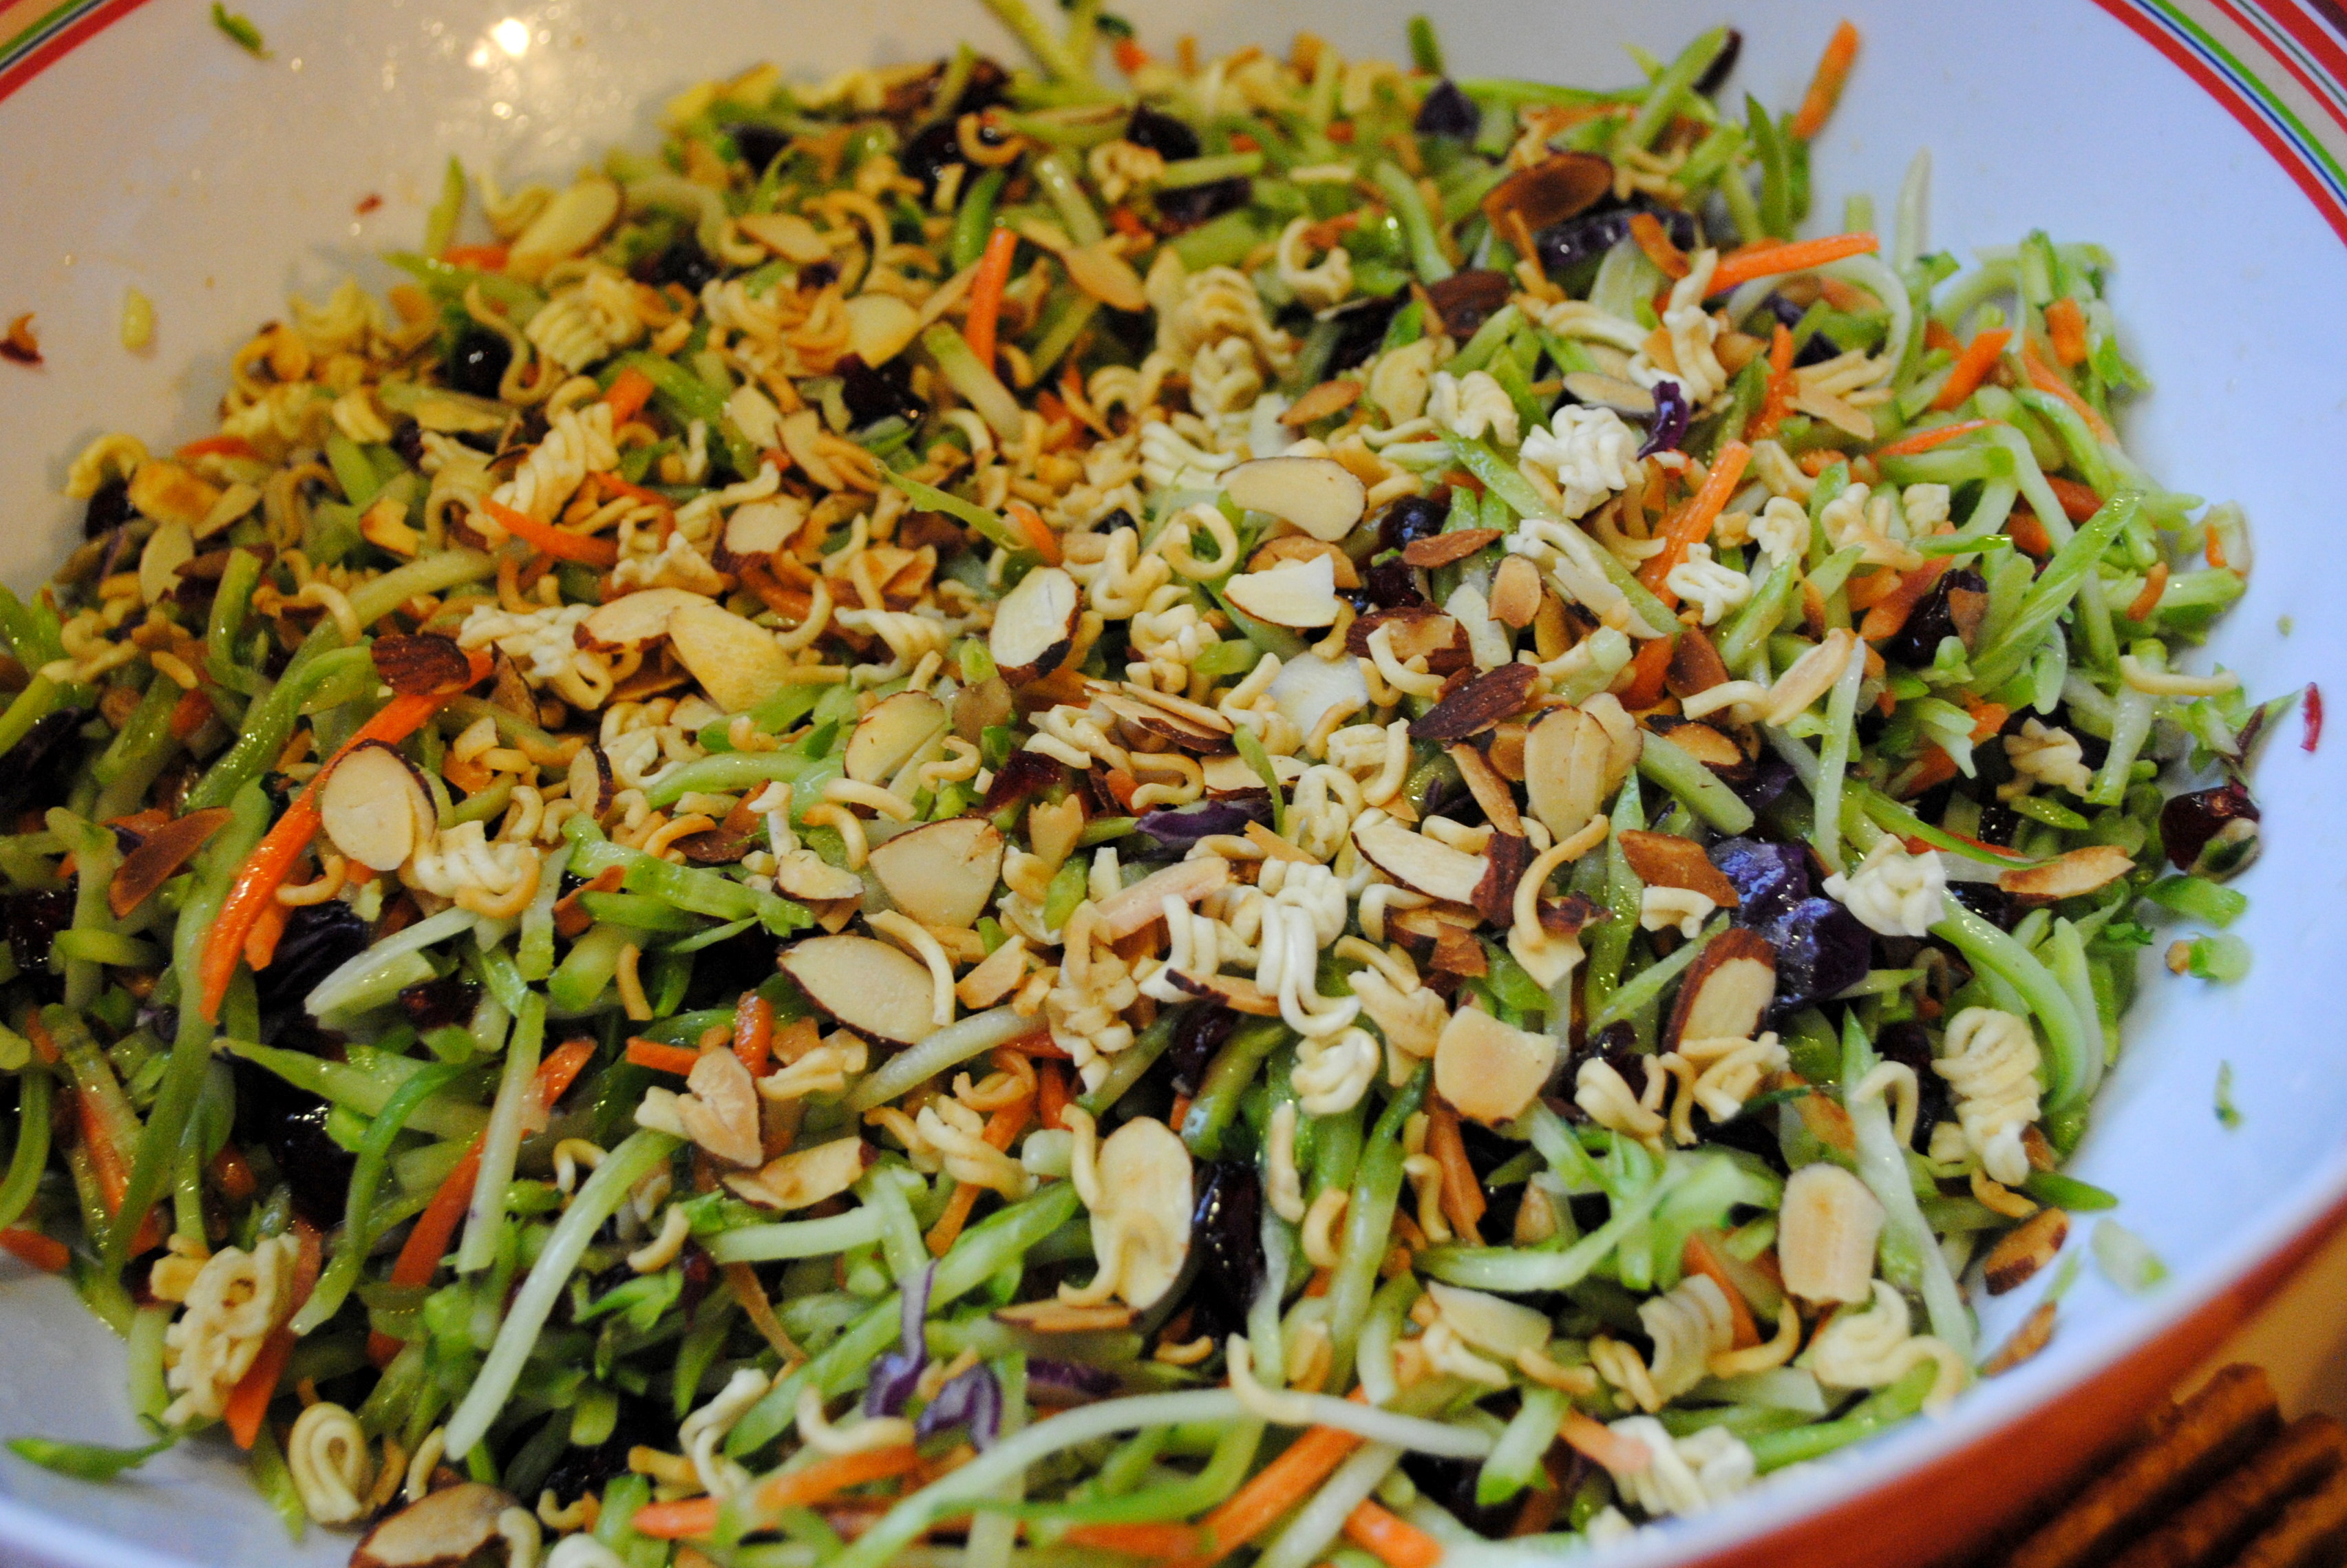 Broccoli Slaw: Great for Potlucks or Cookouts! |